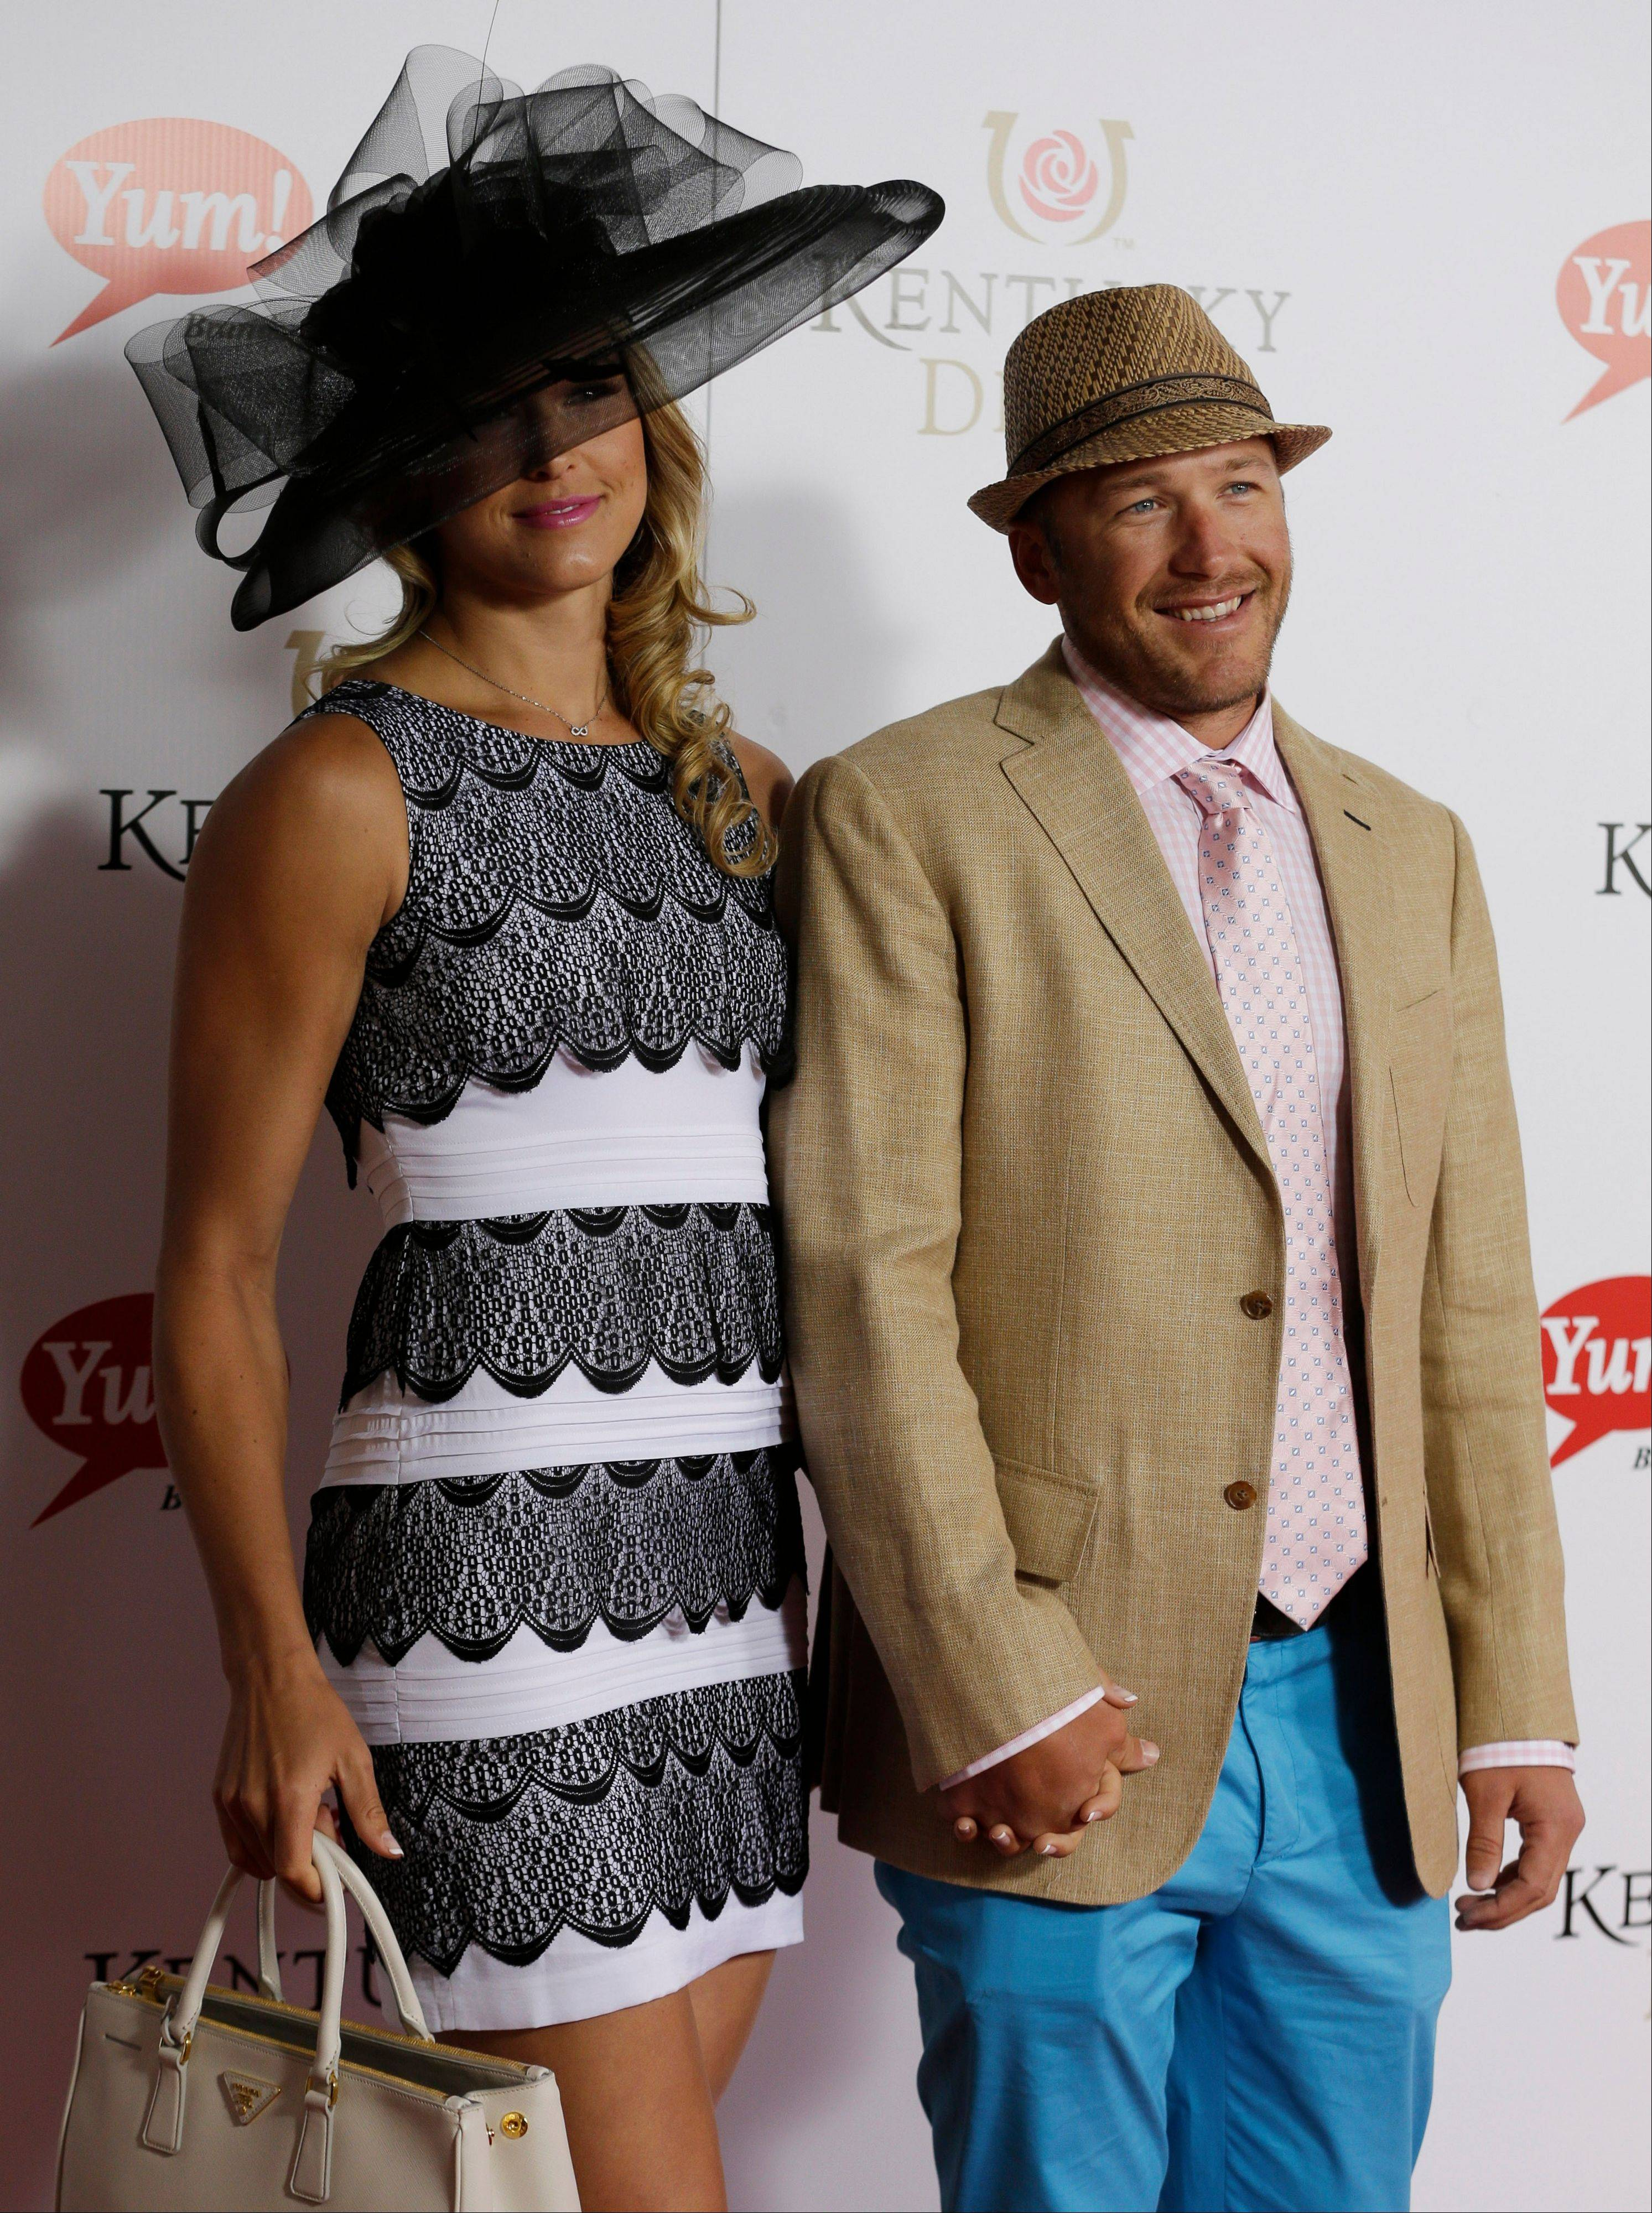 US skier Bode Miller and his wife Morgan arrive to attend the 139th Kentucky Derby.